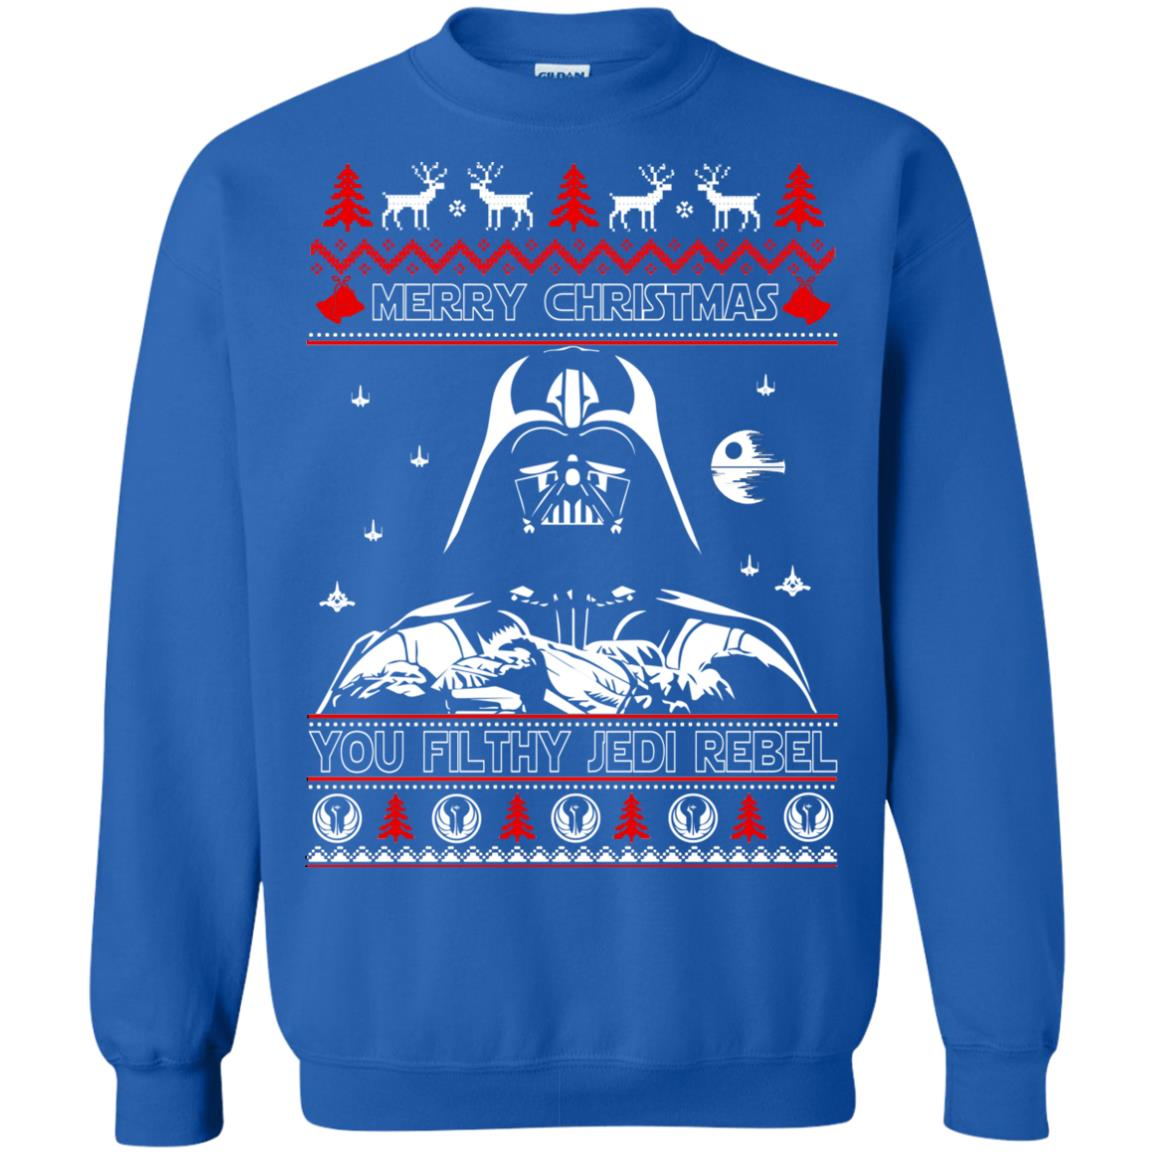 image 1792 - Darth Vader Merry Christmas You Filthy Jedi Rebel Ugly Sweater, Shirt